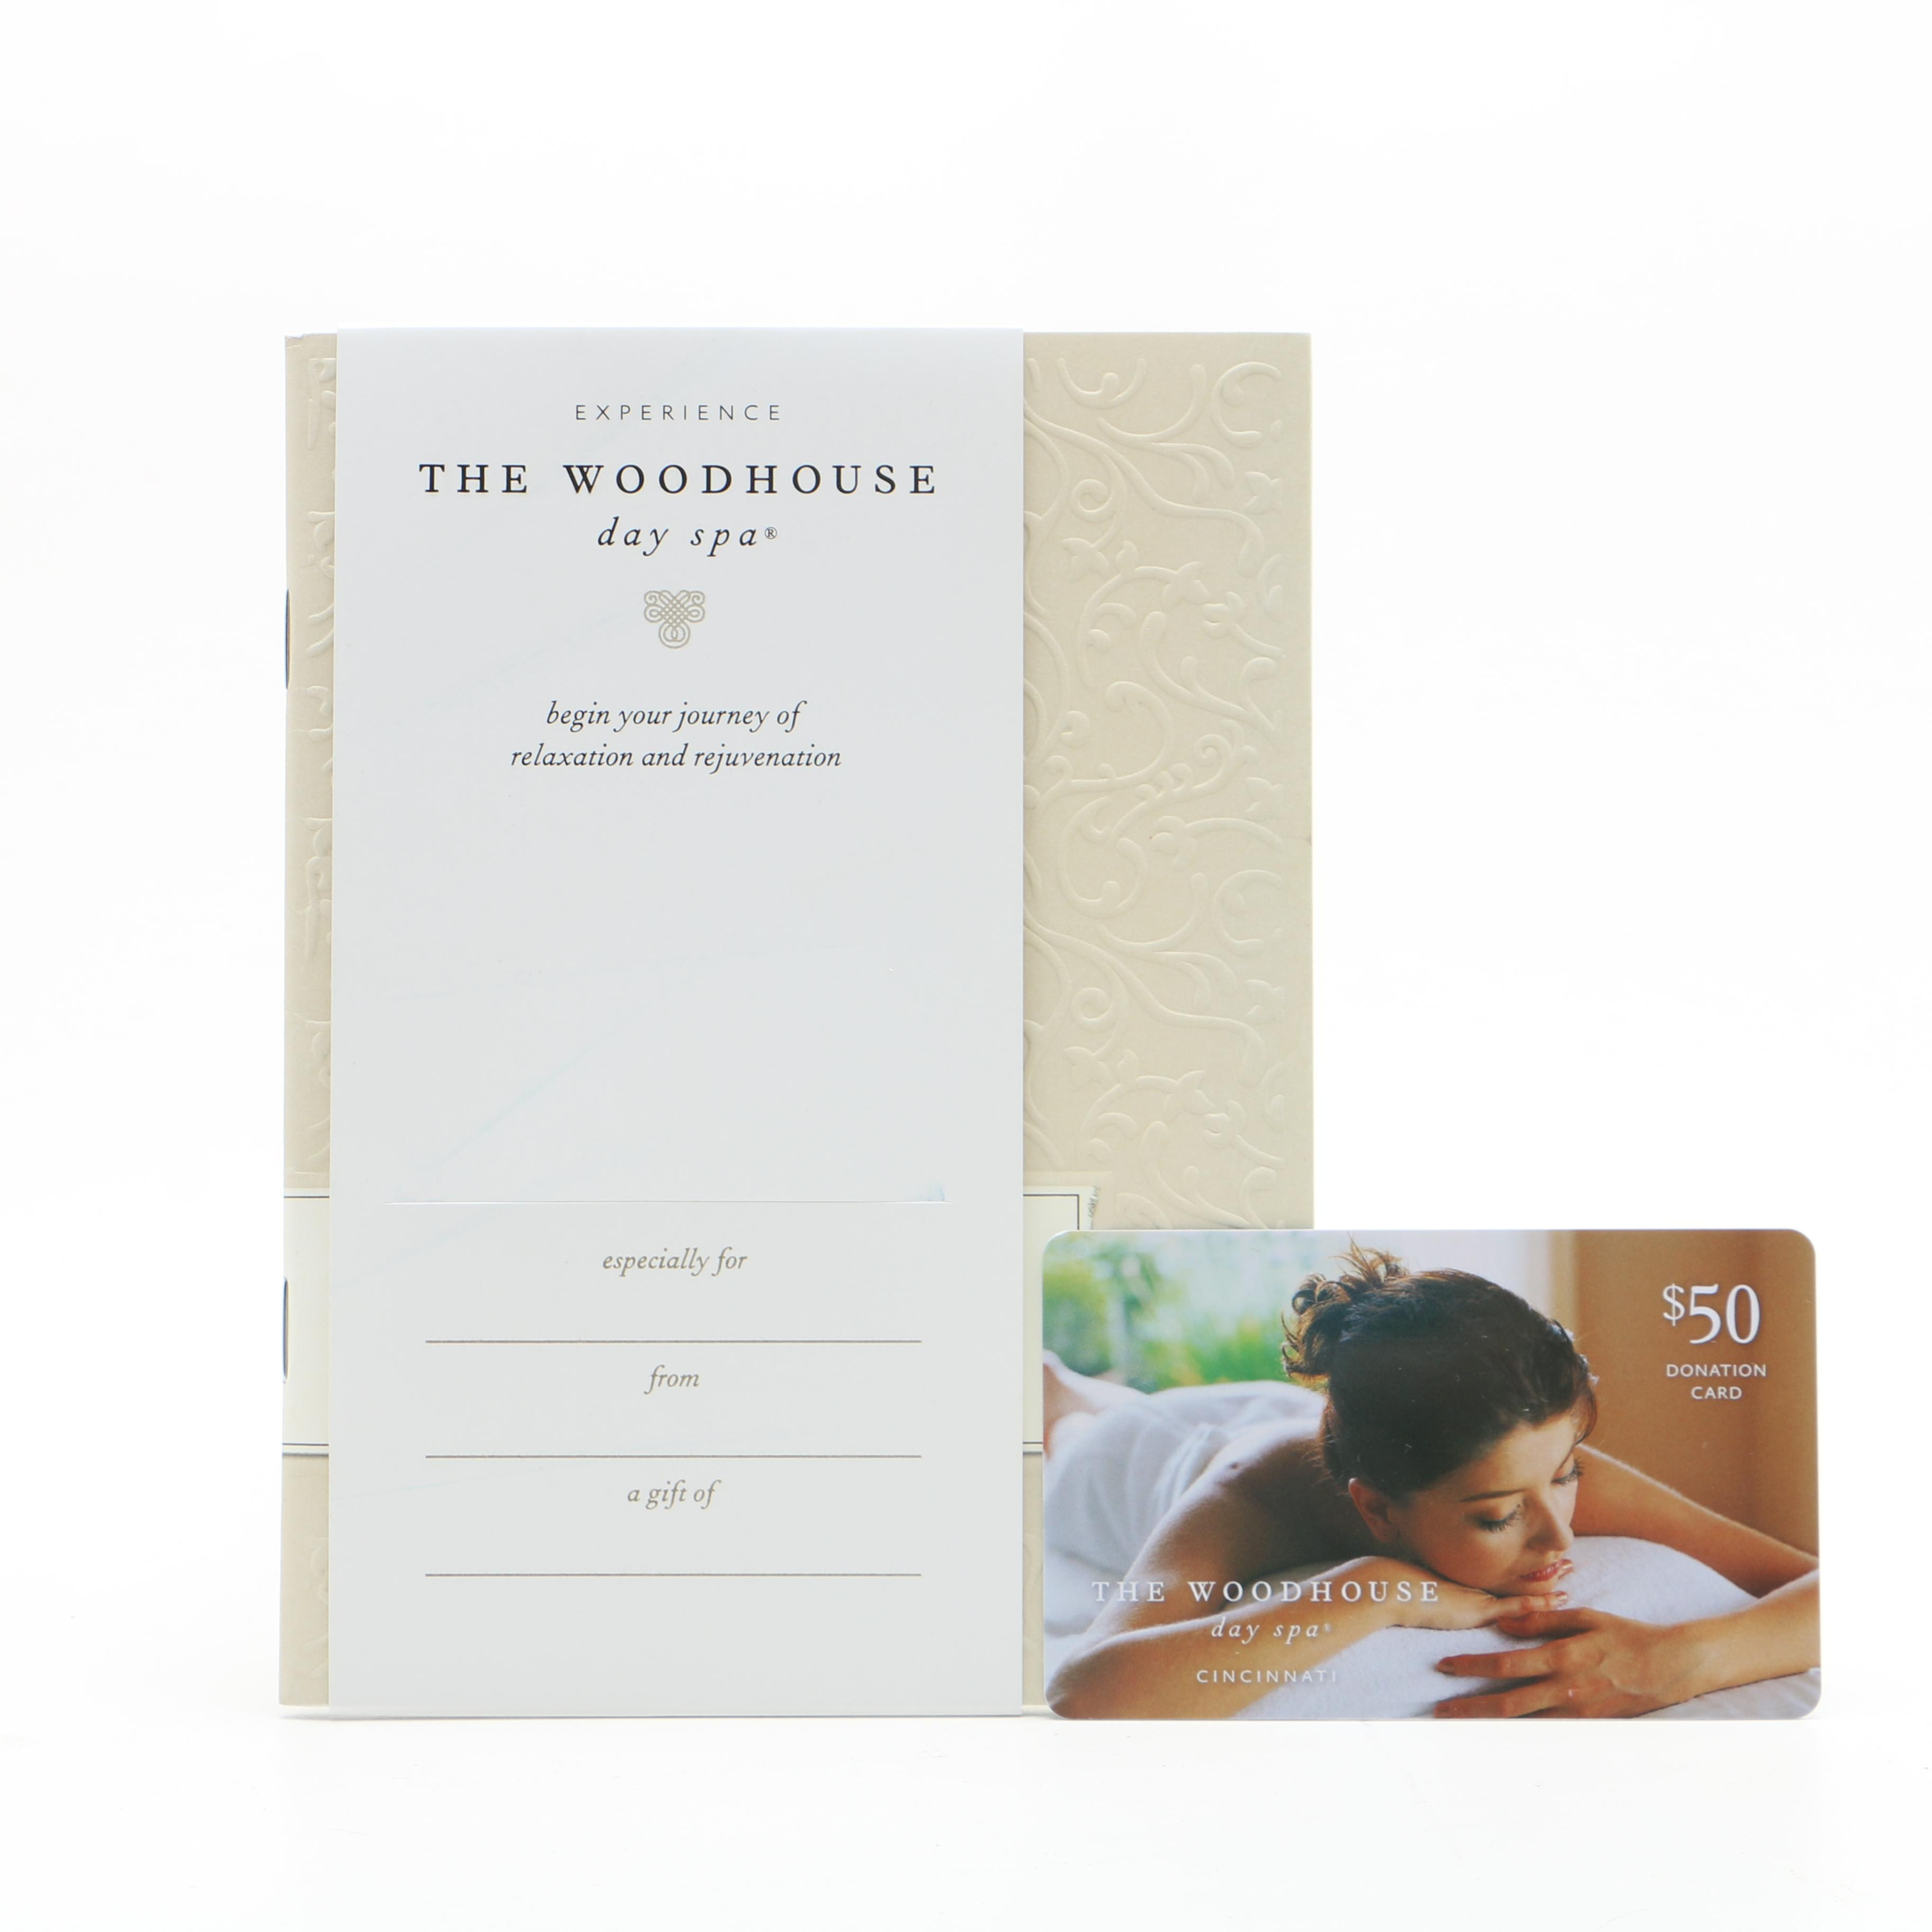 Woodhouse Day Spa Gift Certificate